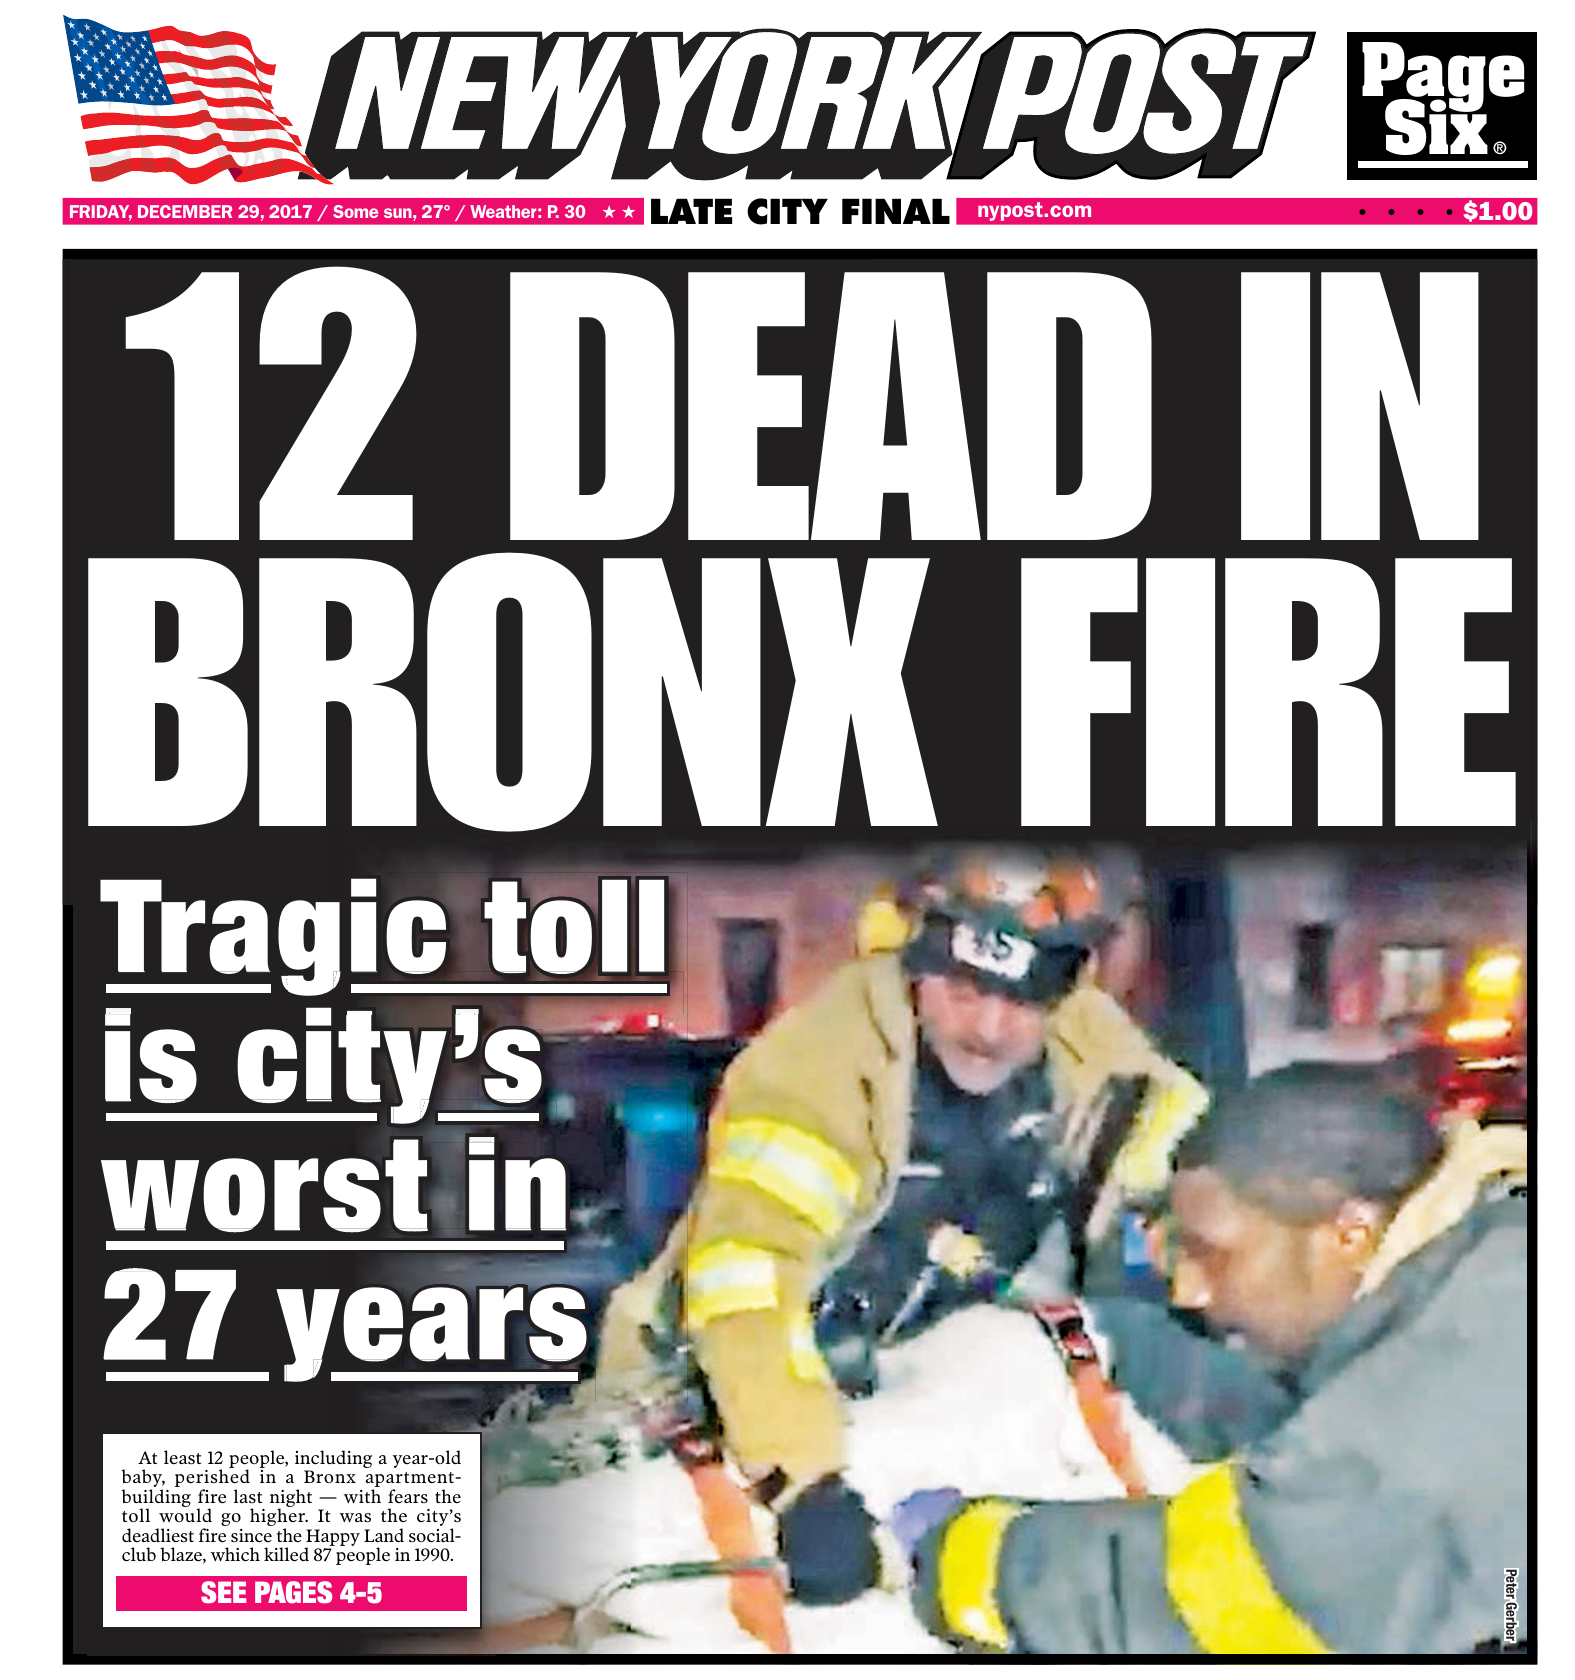 New York Post - December 29 cb3e64939